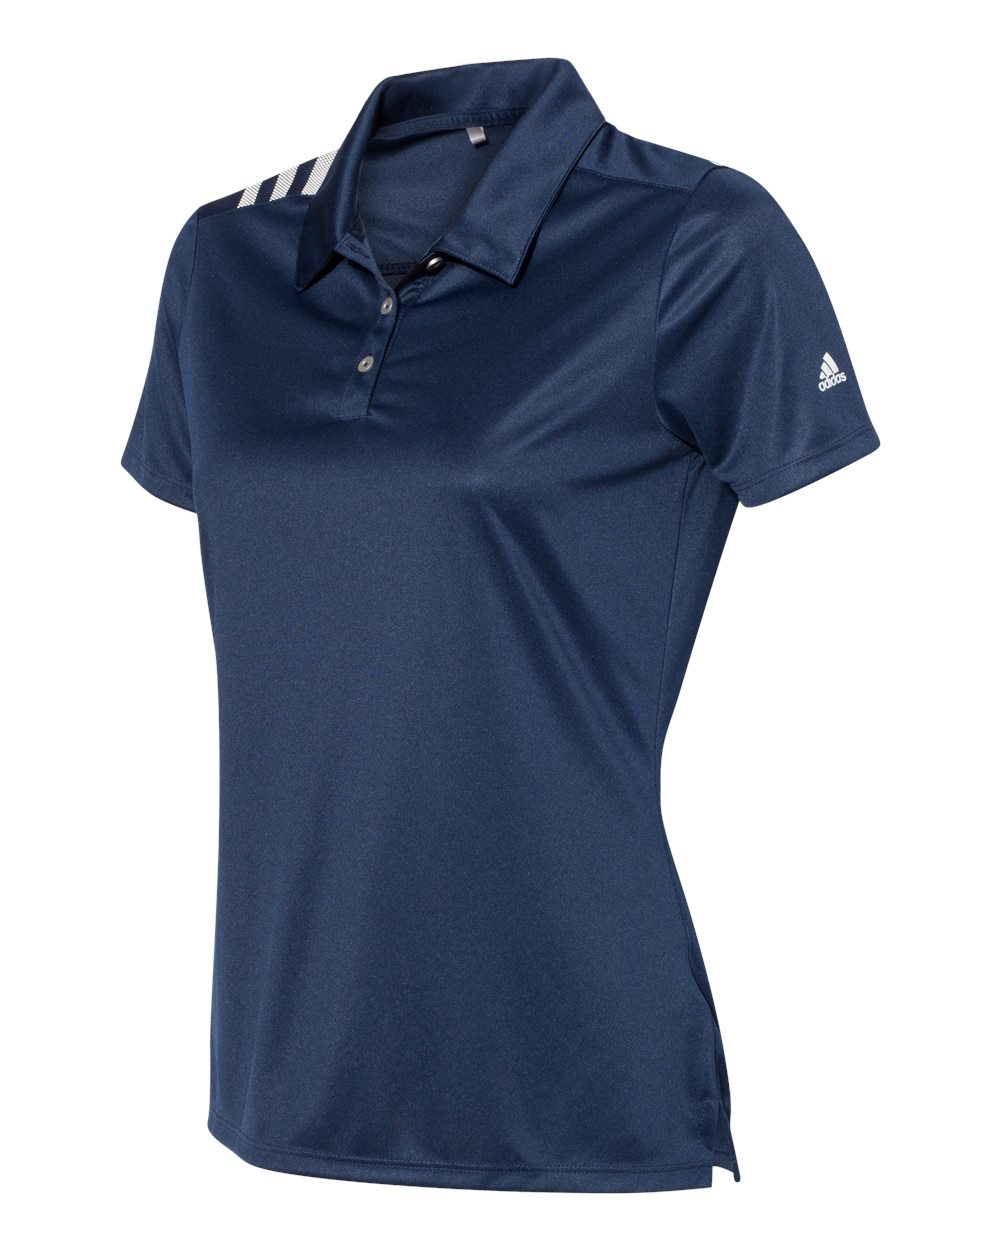 click to view Collegiate Navy/ White